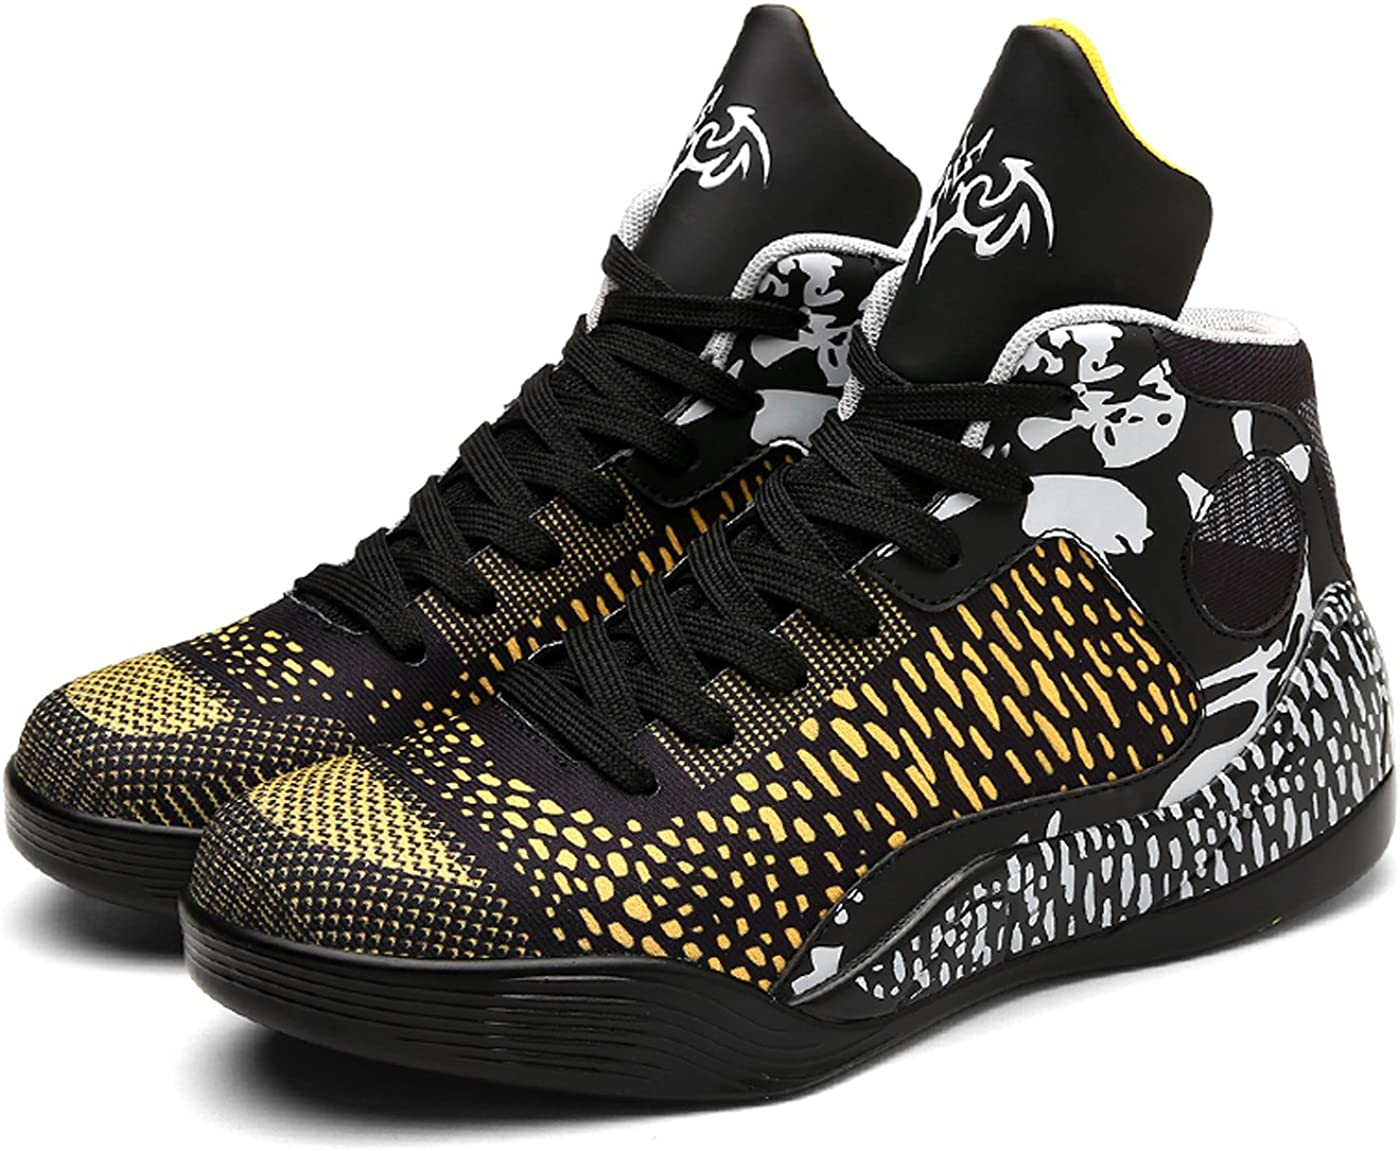 Margay Spring and Summer Couple Fashionable Sports Shoes Basketball Shoes 6 Colors